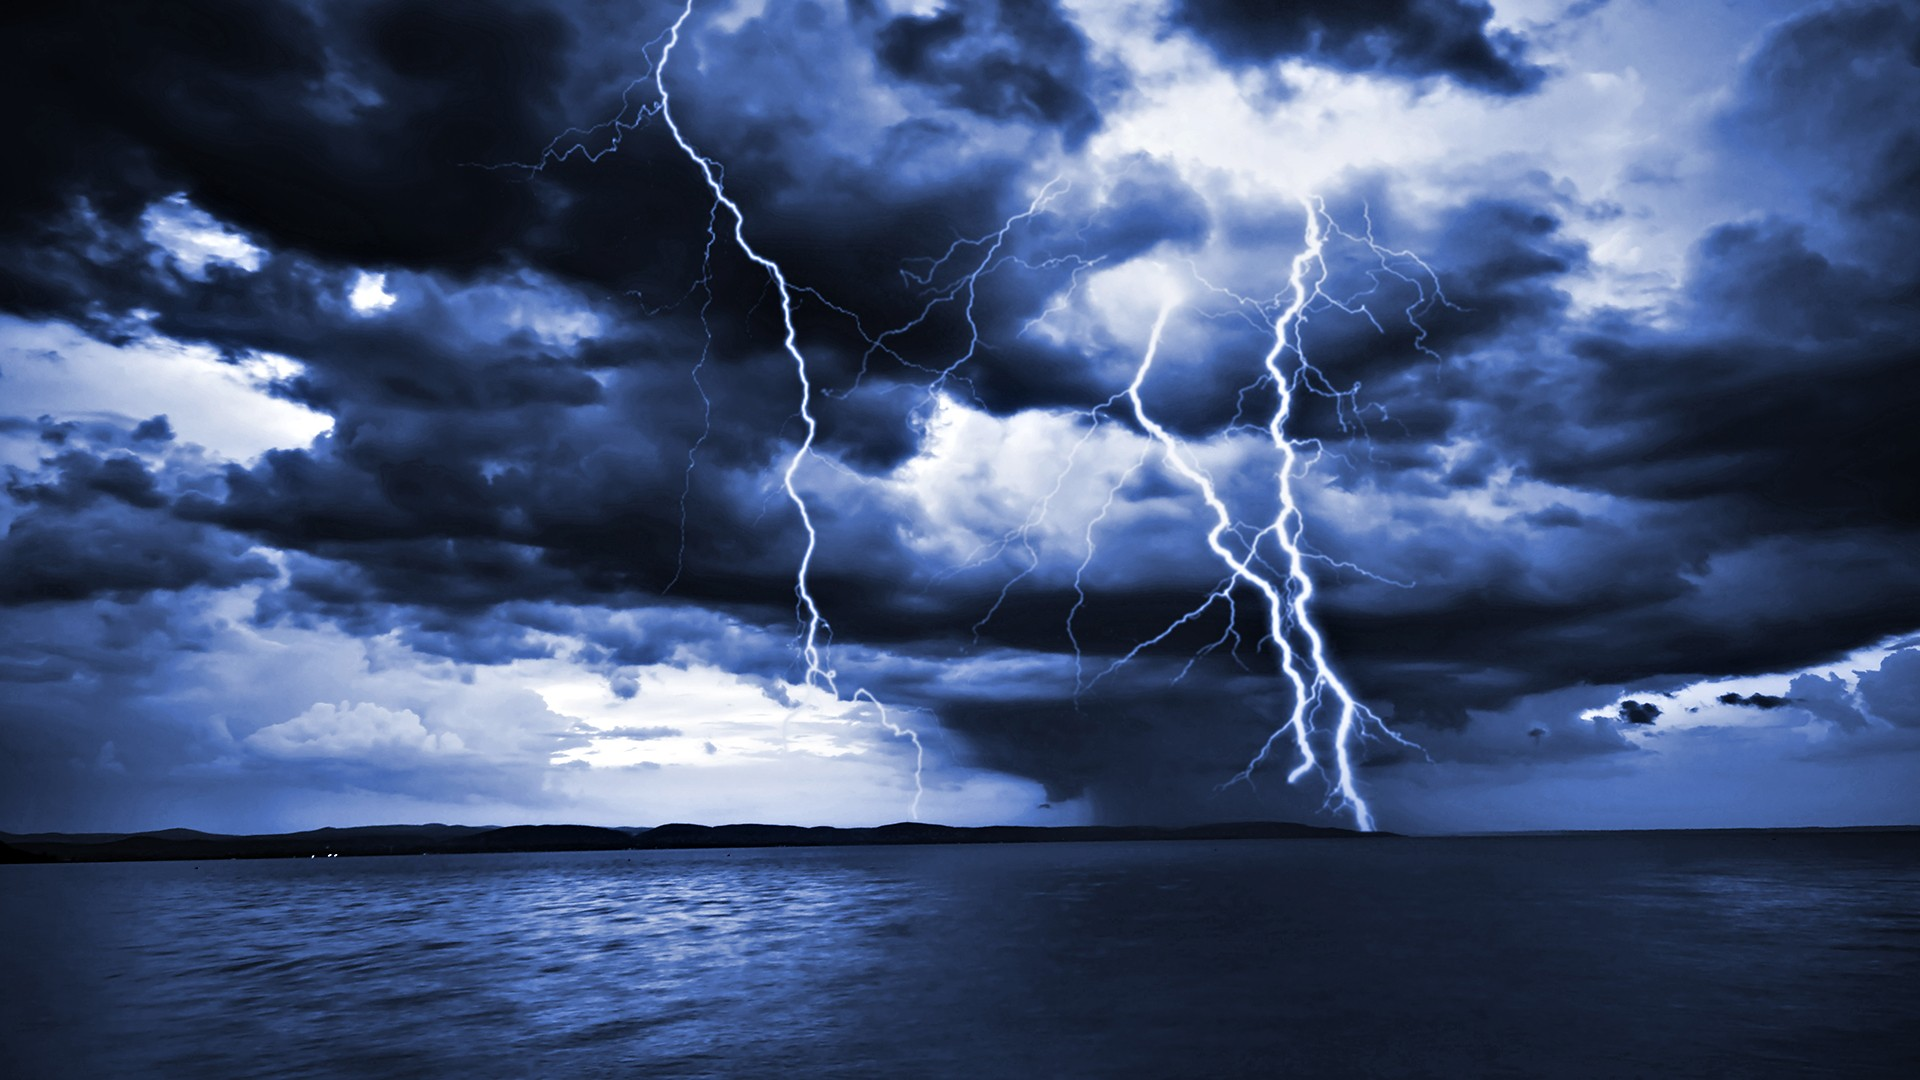 Thunderstorm Wallpaper 1920x1080 Wallpaper storm high 1920x1080